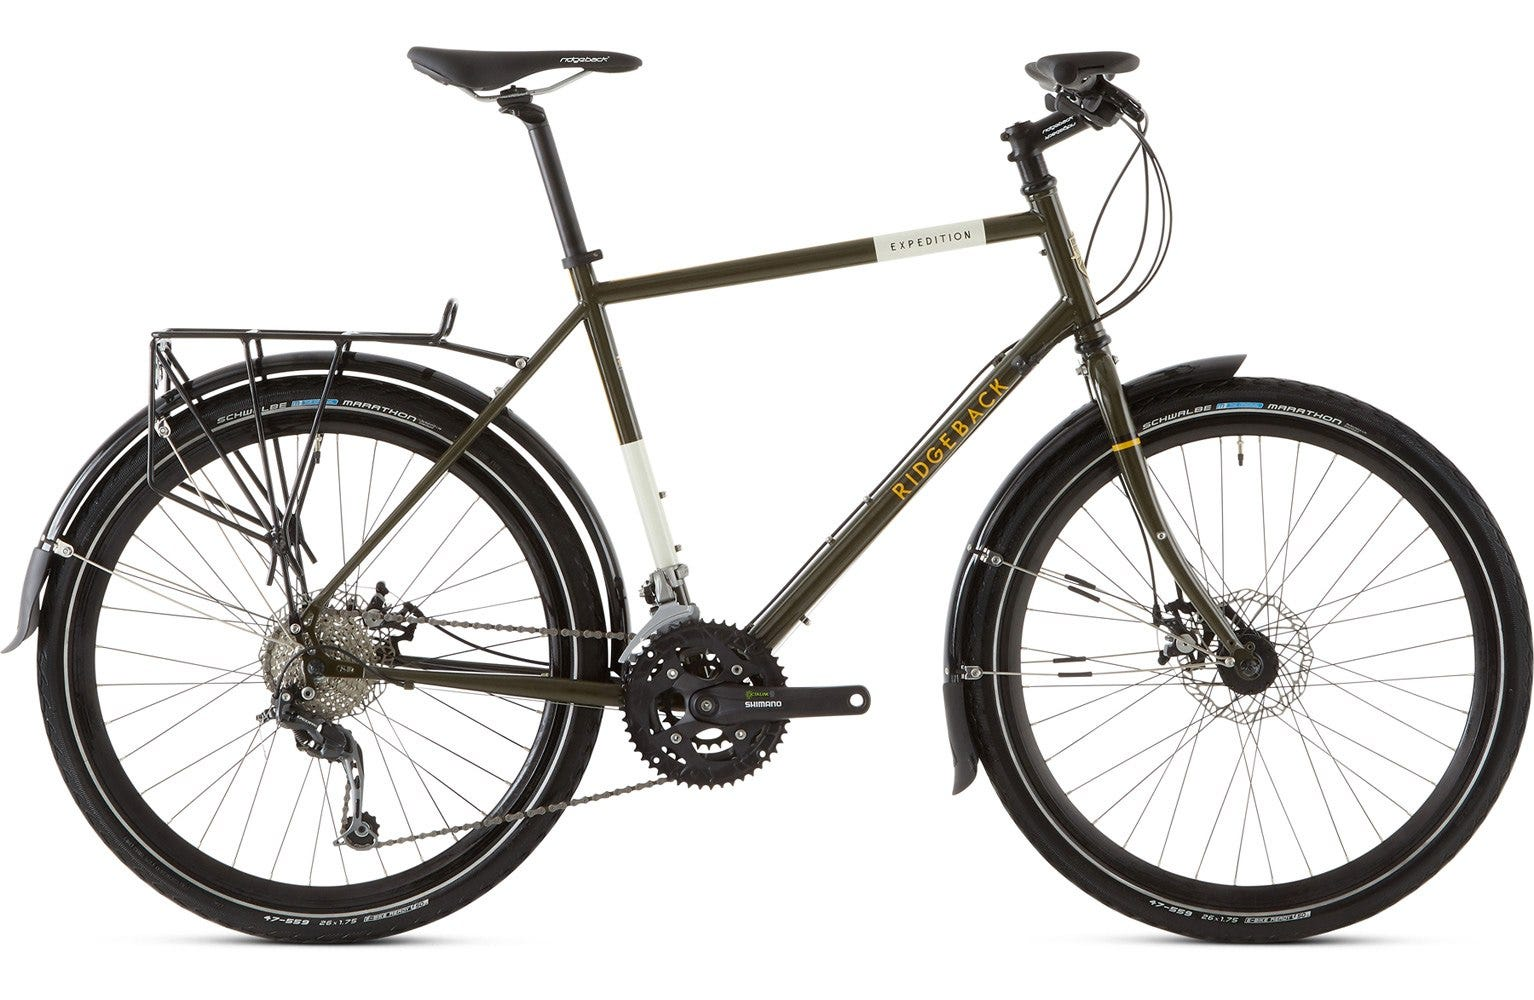 Ridgeback Expedition bike 2019